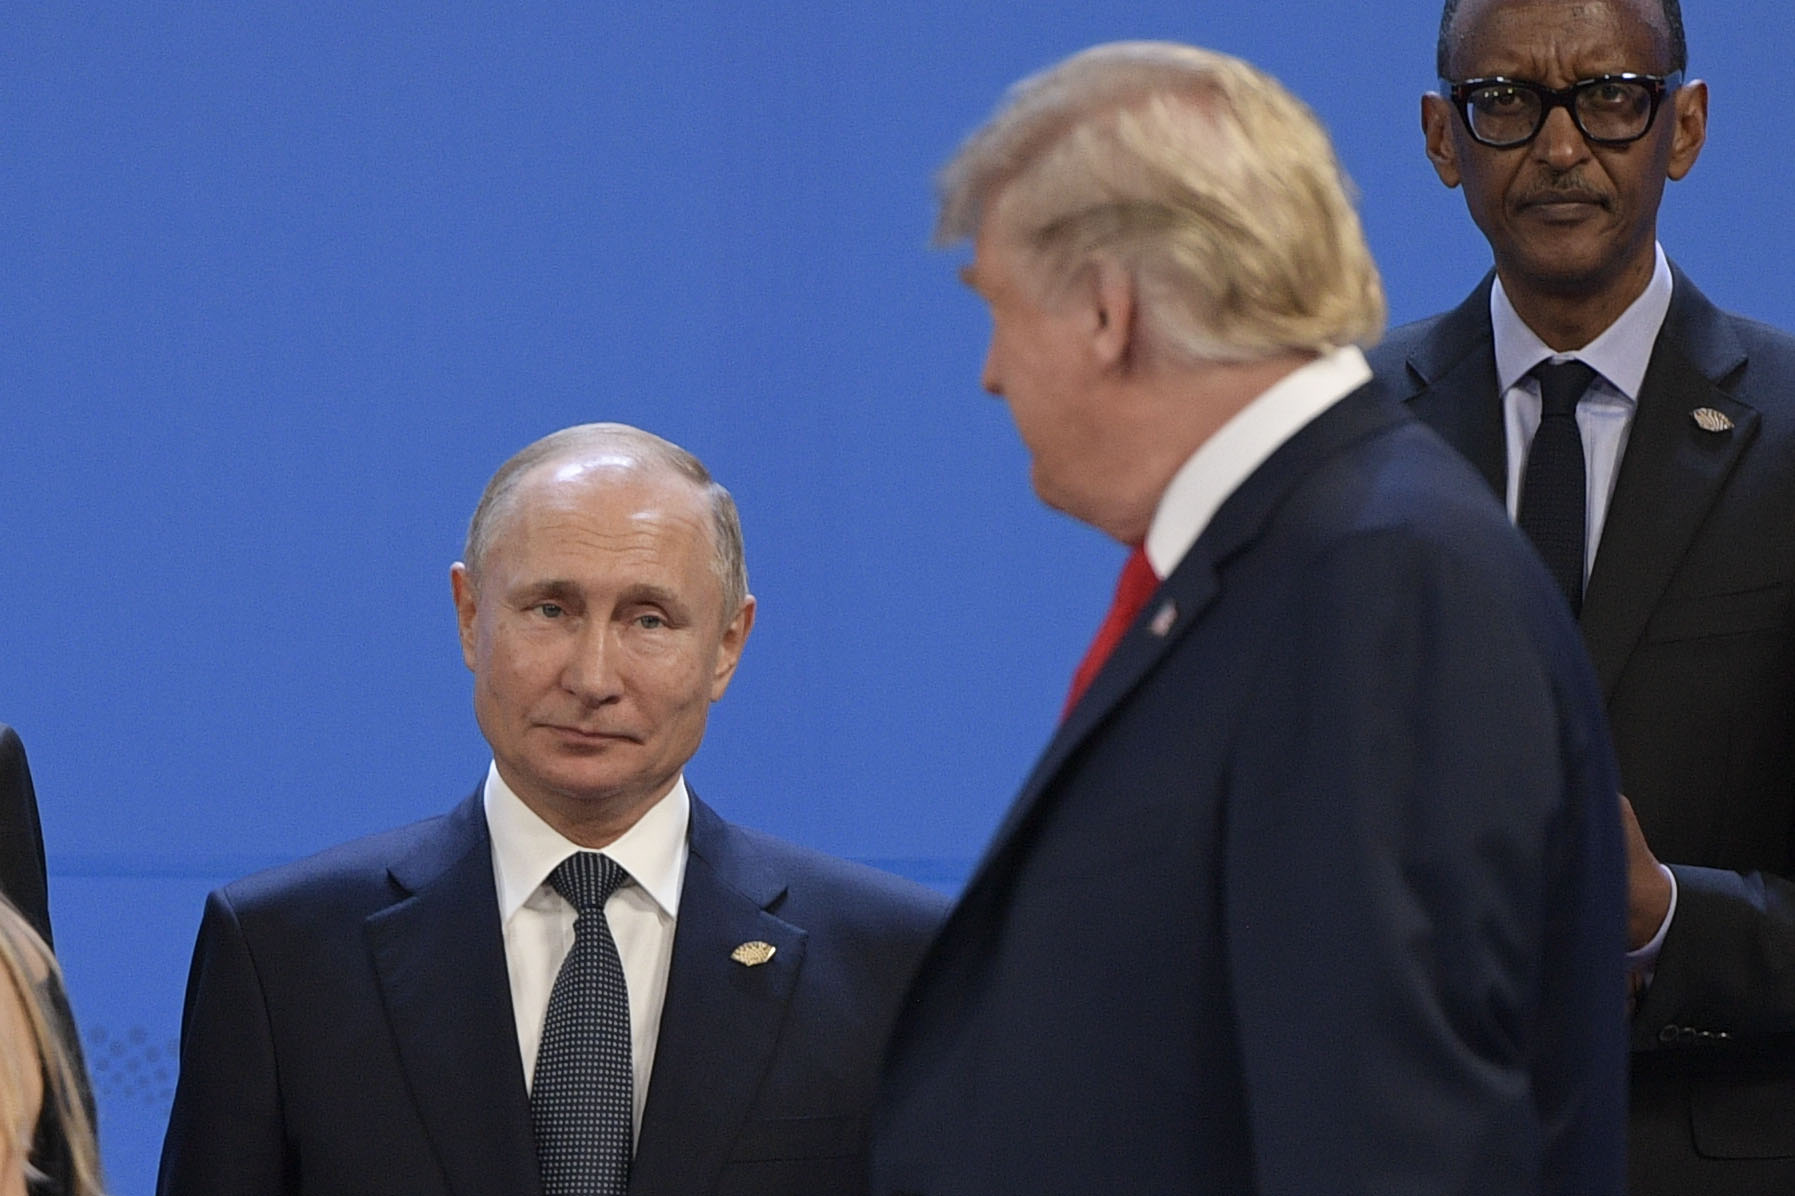 US President Donald Trump (R), looks at Russia's President Vladimir Putin as they take place for a family photo, during the G20 Leaders' Summit in Buenos Aires, on November 30, 2018. (JUAN MABROMATA/AFP/Getty Images)